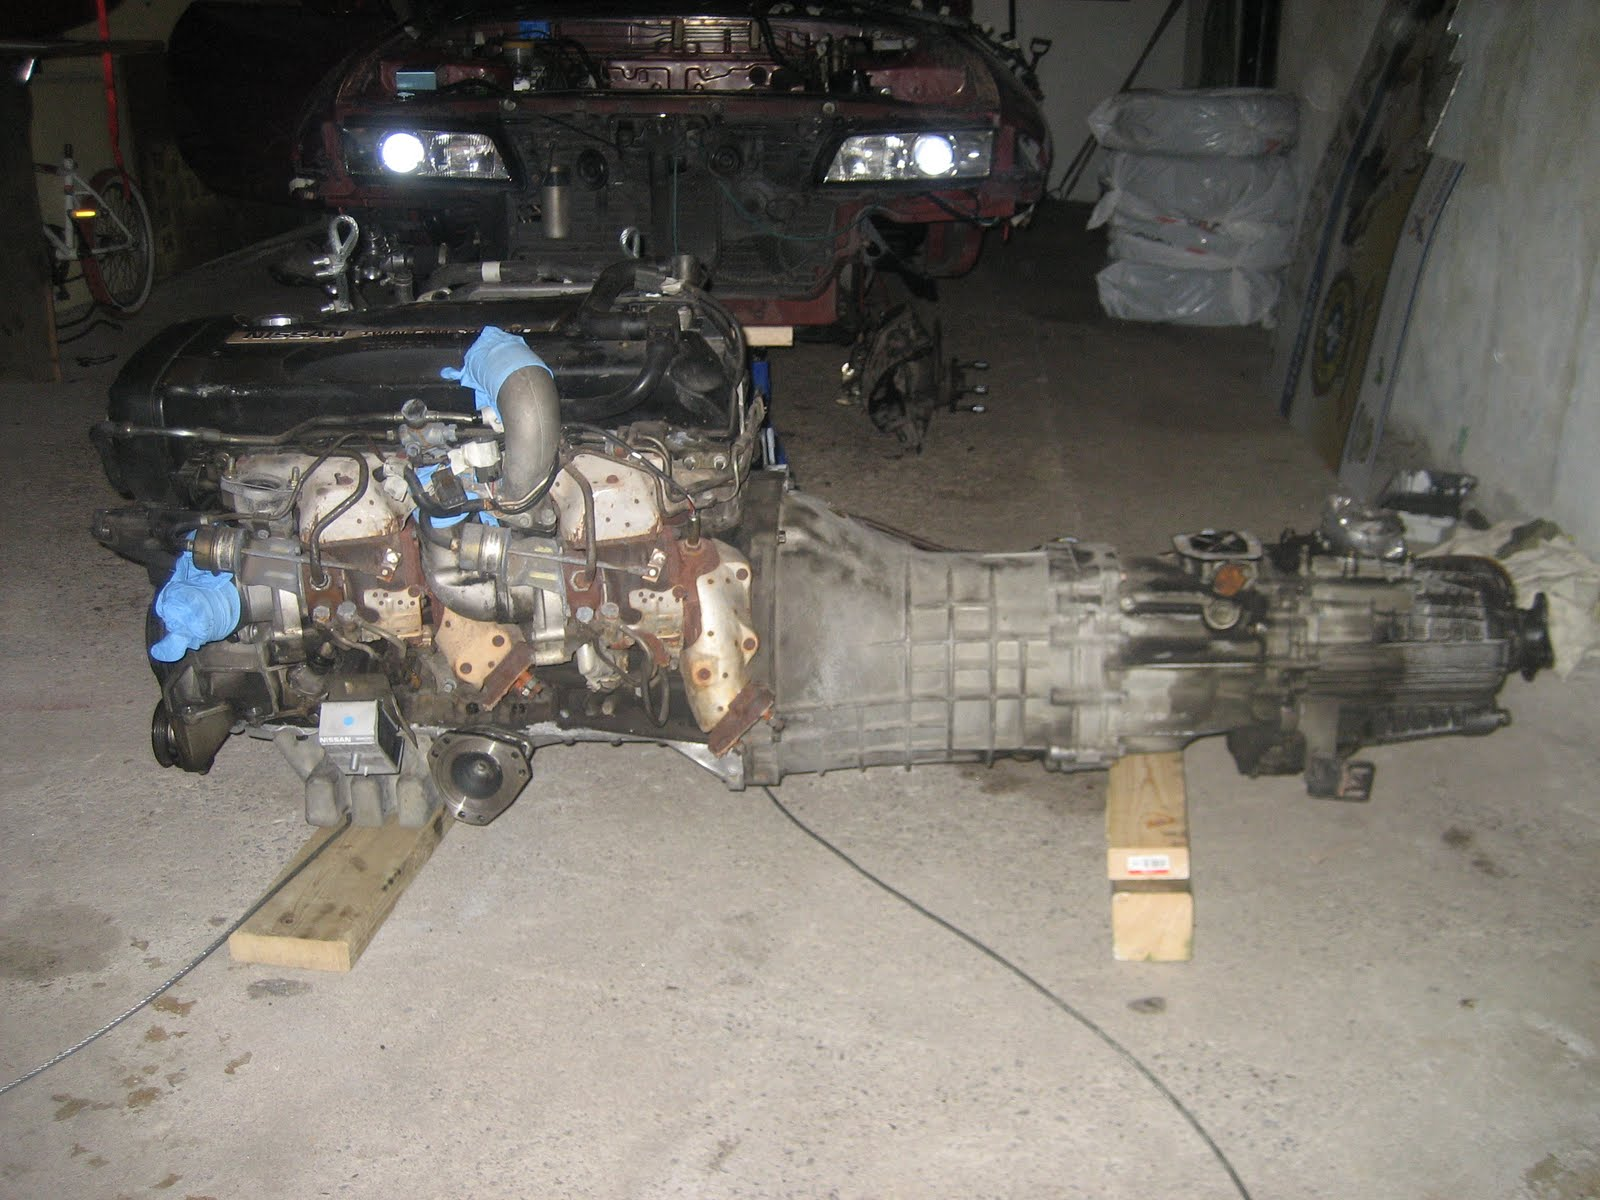 Rb26dett Engine Diagram Wiring Library Rb26 Turbo Swap Upgrade And Overhaul Guide